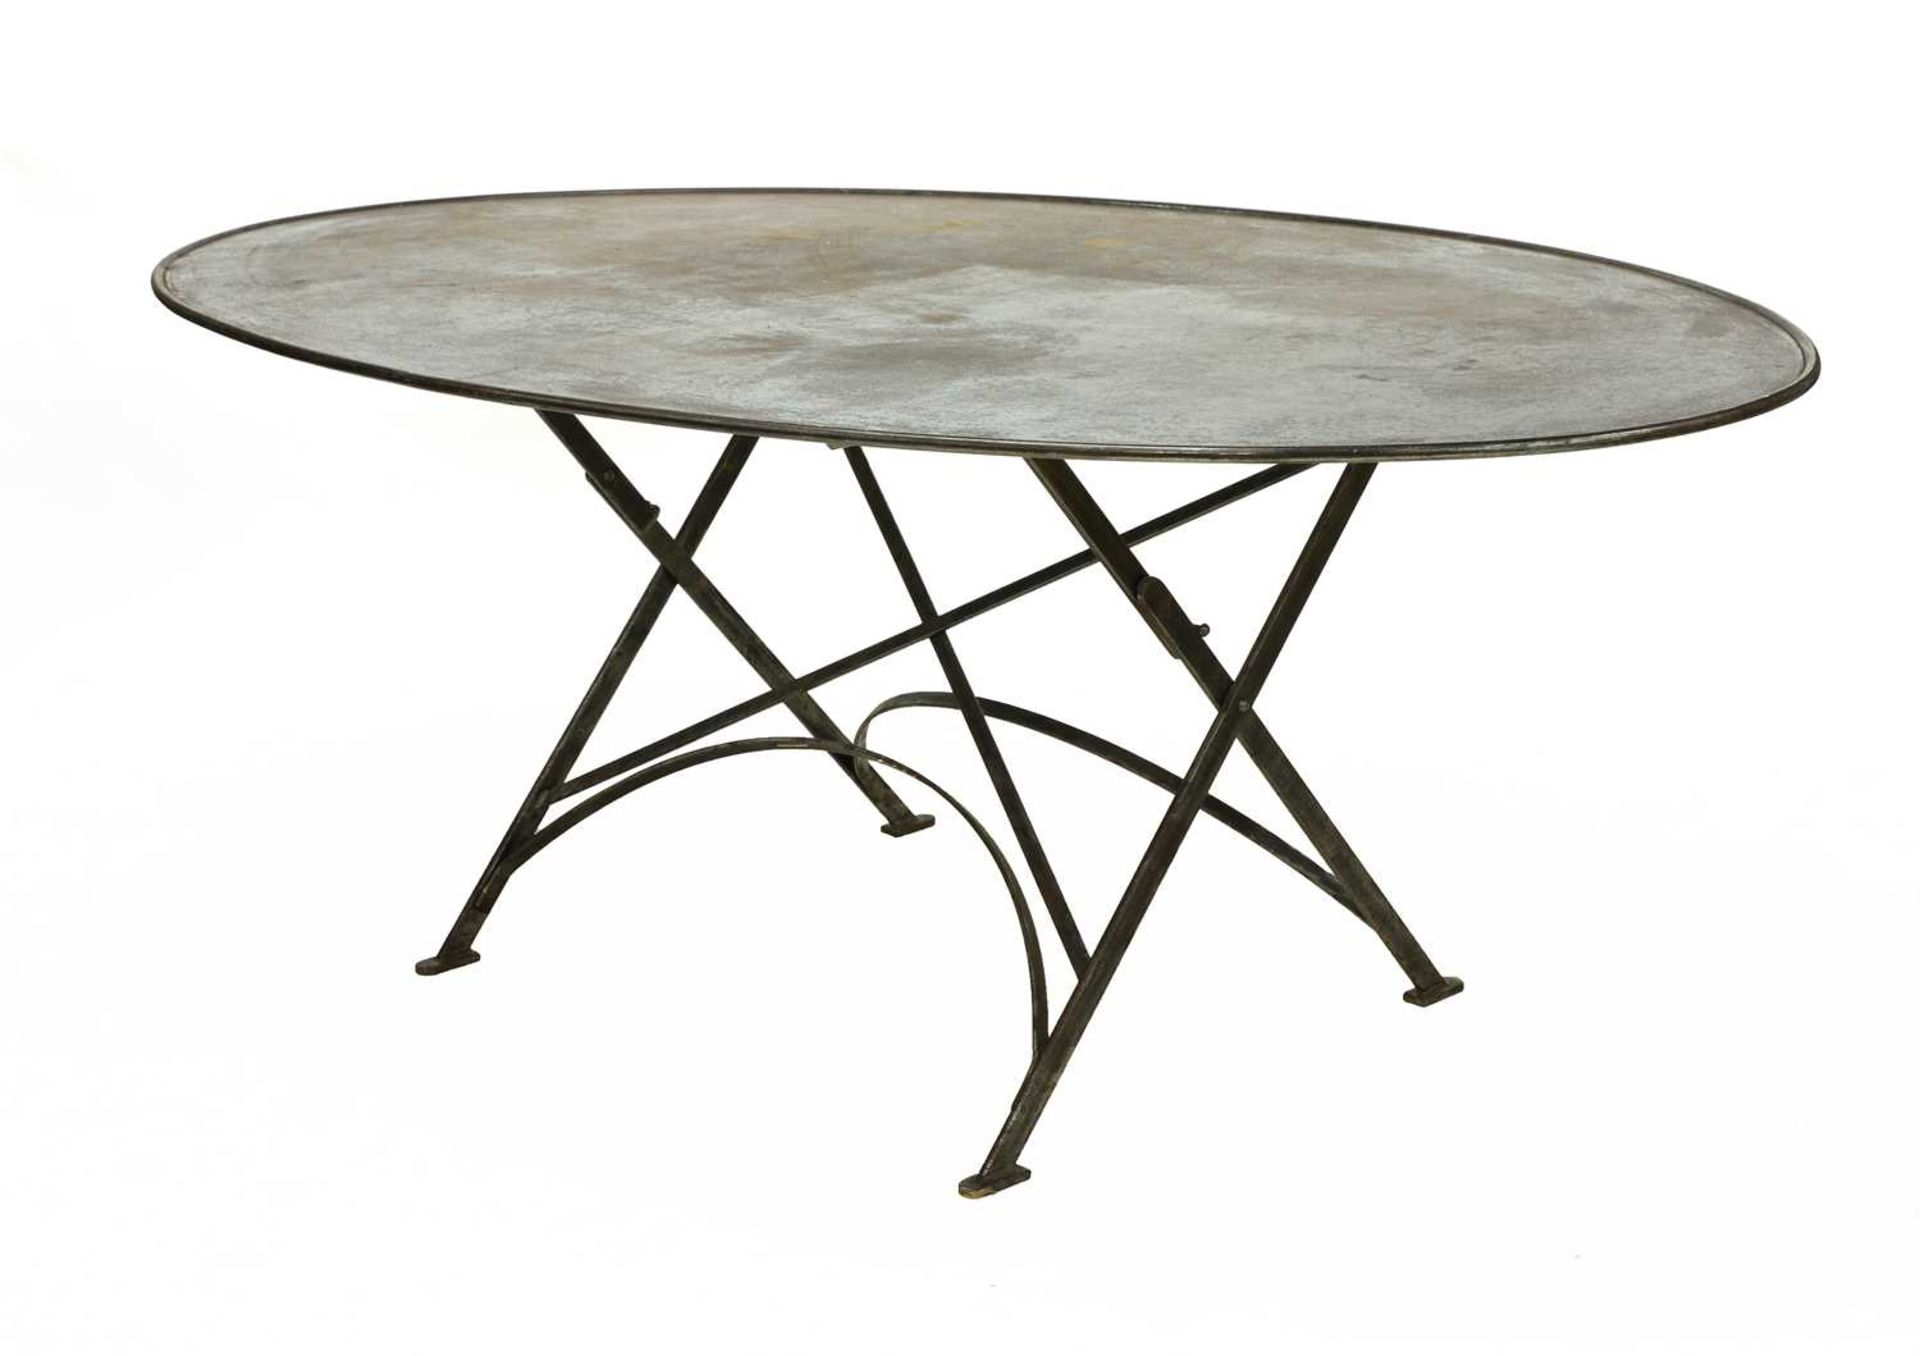 An oval steel folding dining table,